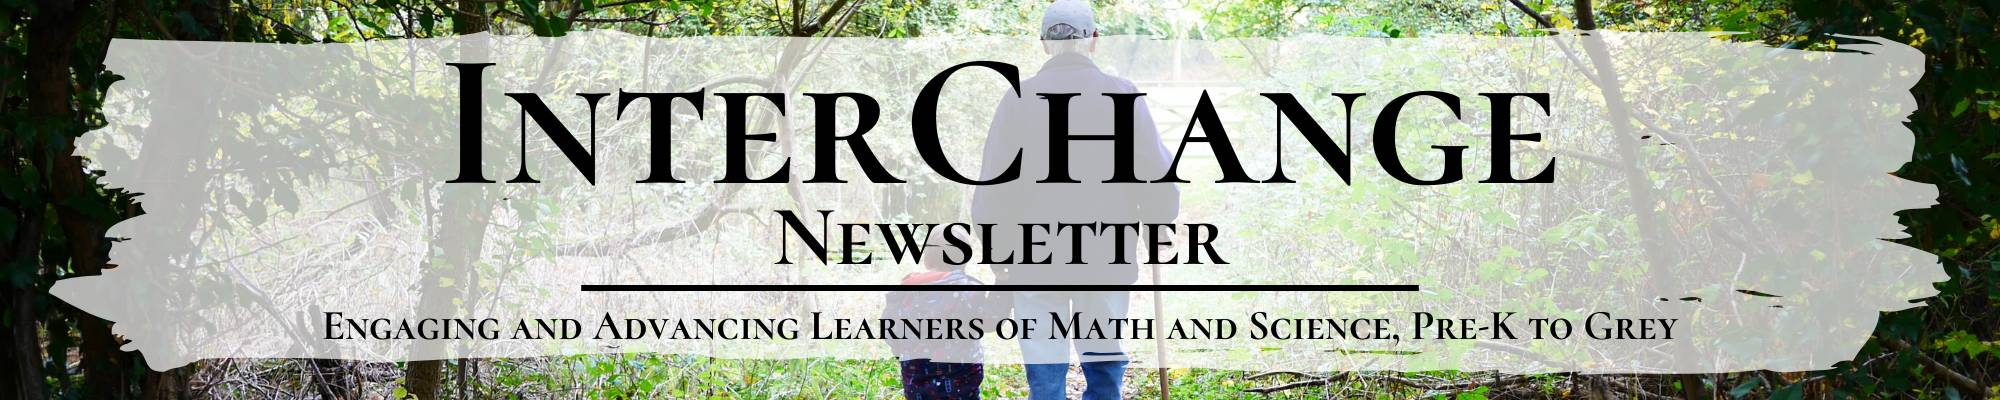 InterChange Newsletter